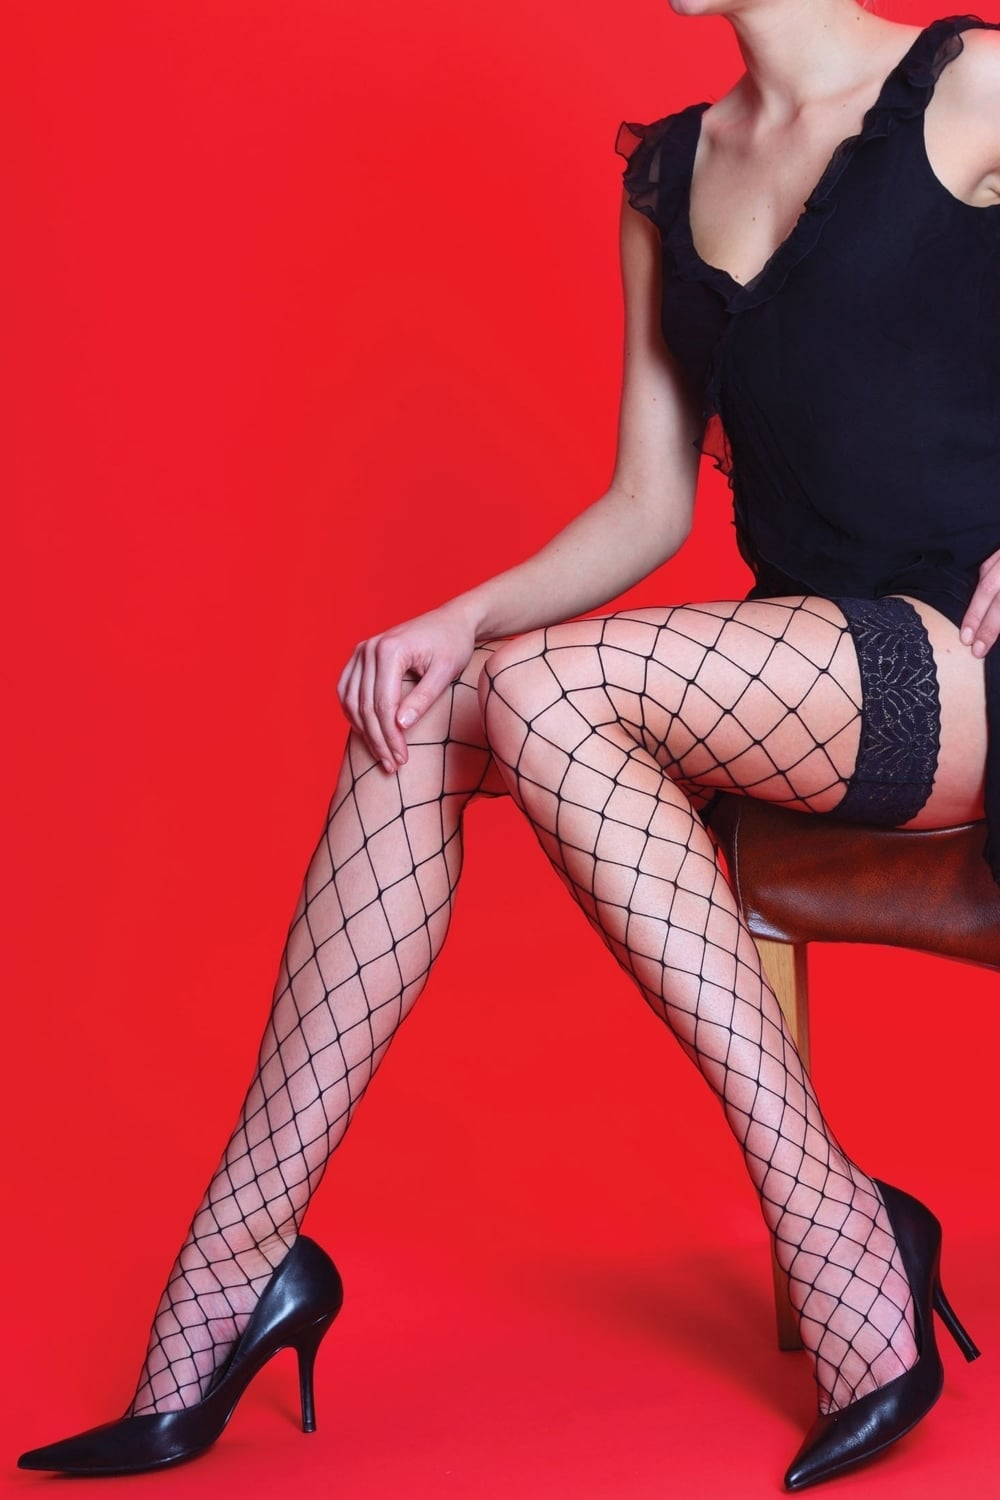 fbf2513e9 Whale Net Lace Top Hold Ups by Silky